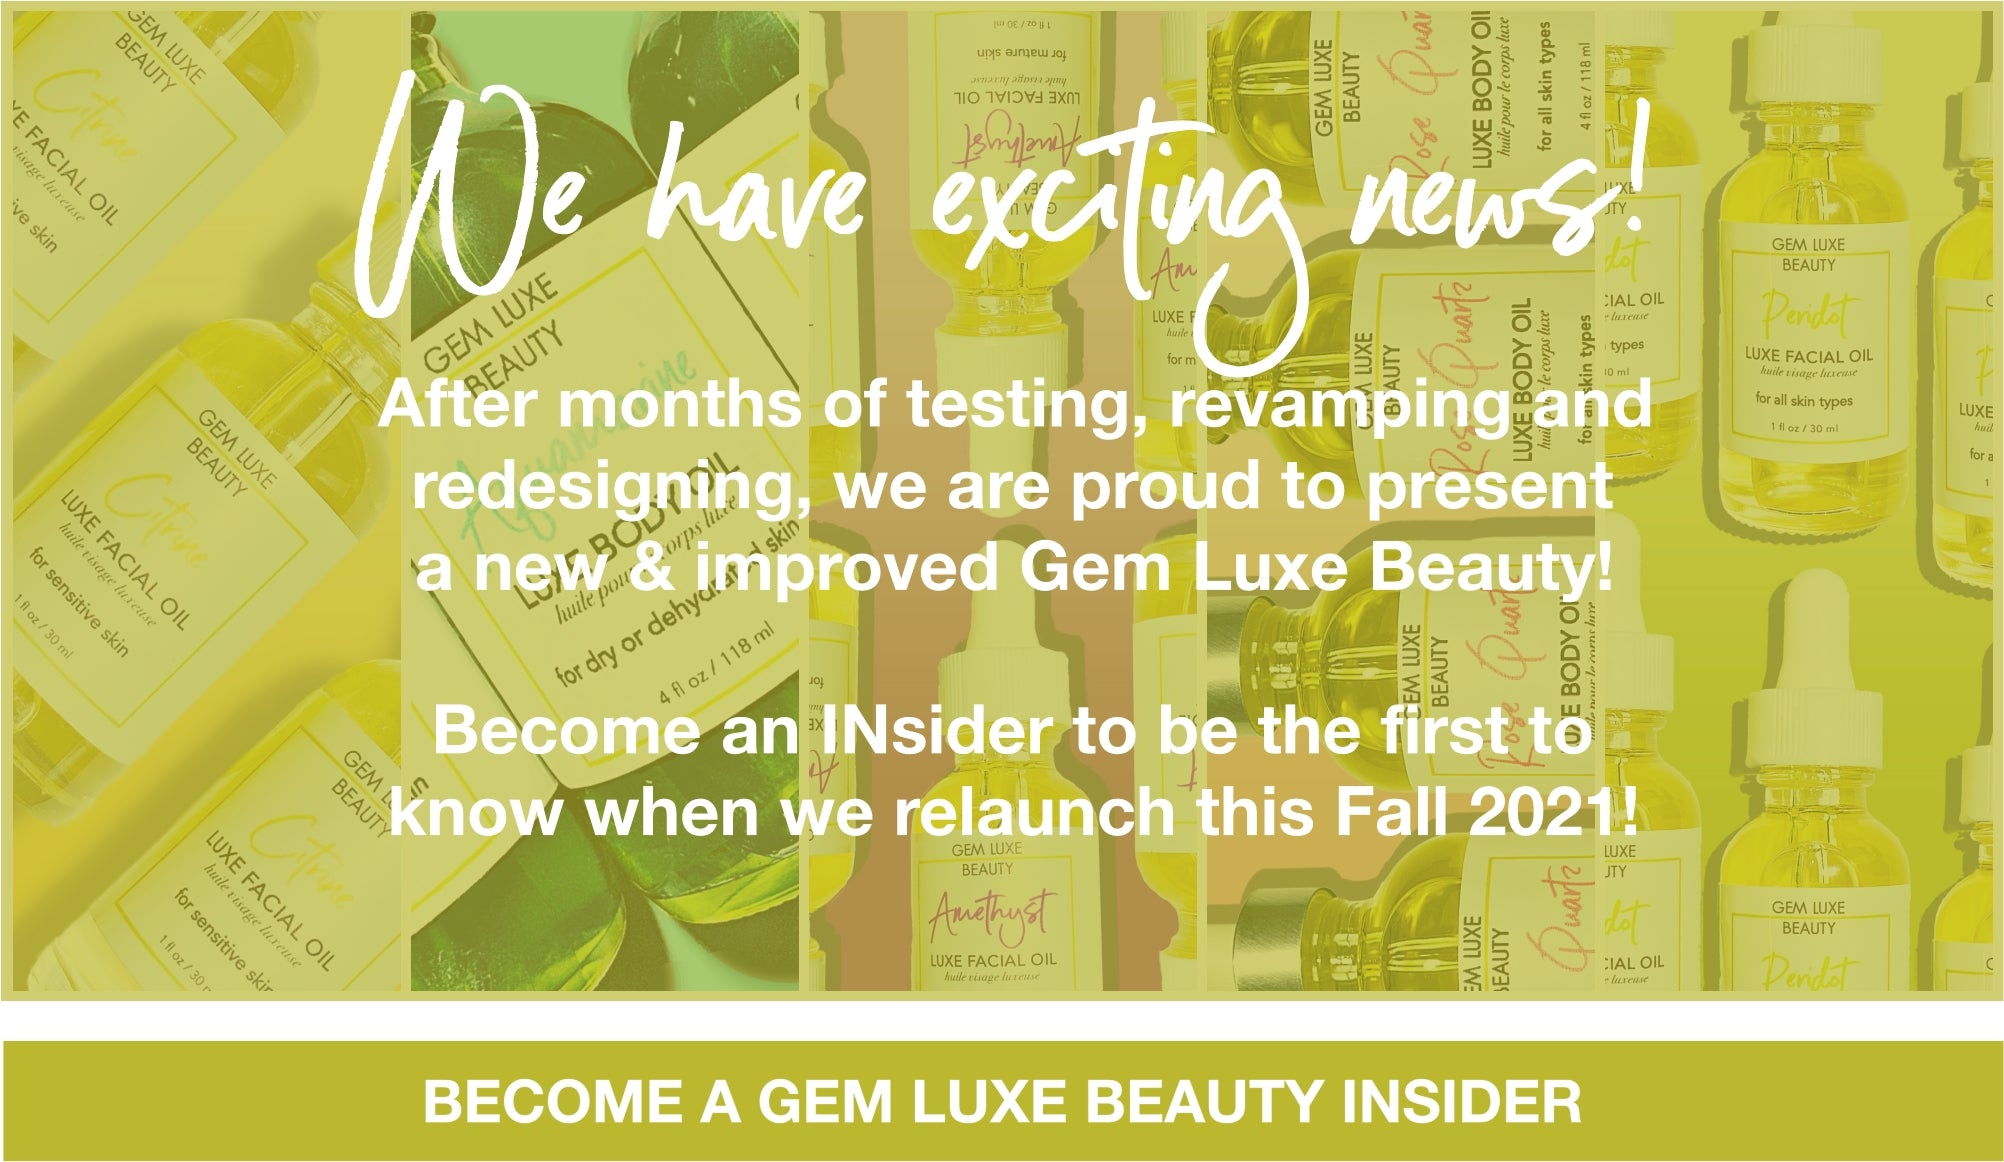 We Have Exciting News! Gem Luxe Beauty Relaunch Fall 2021